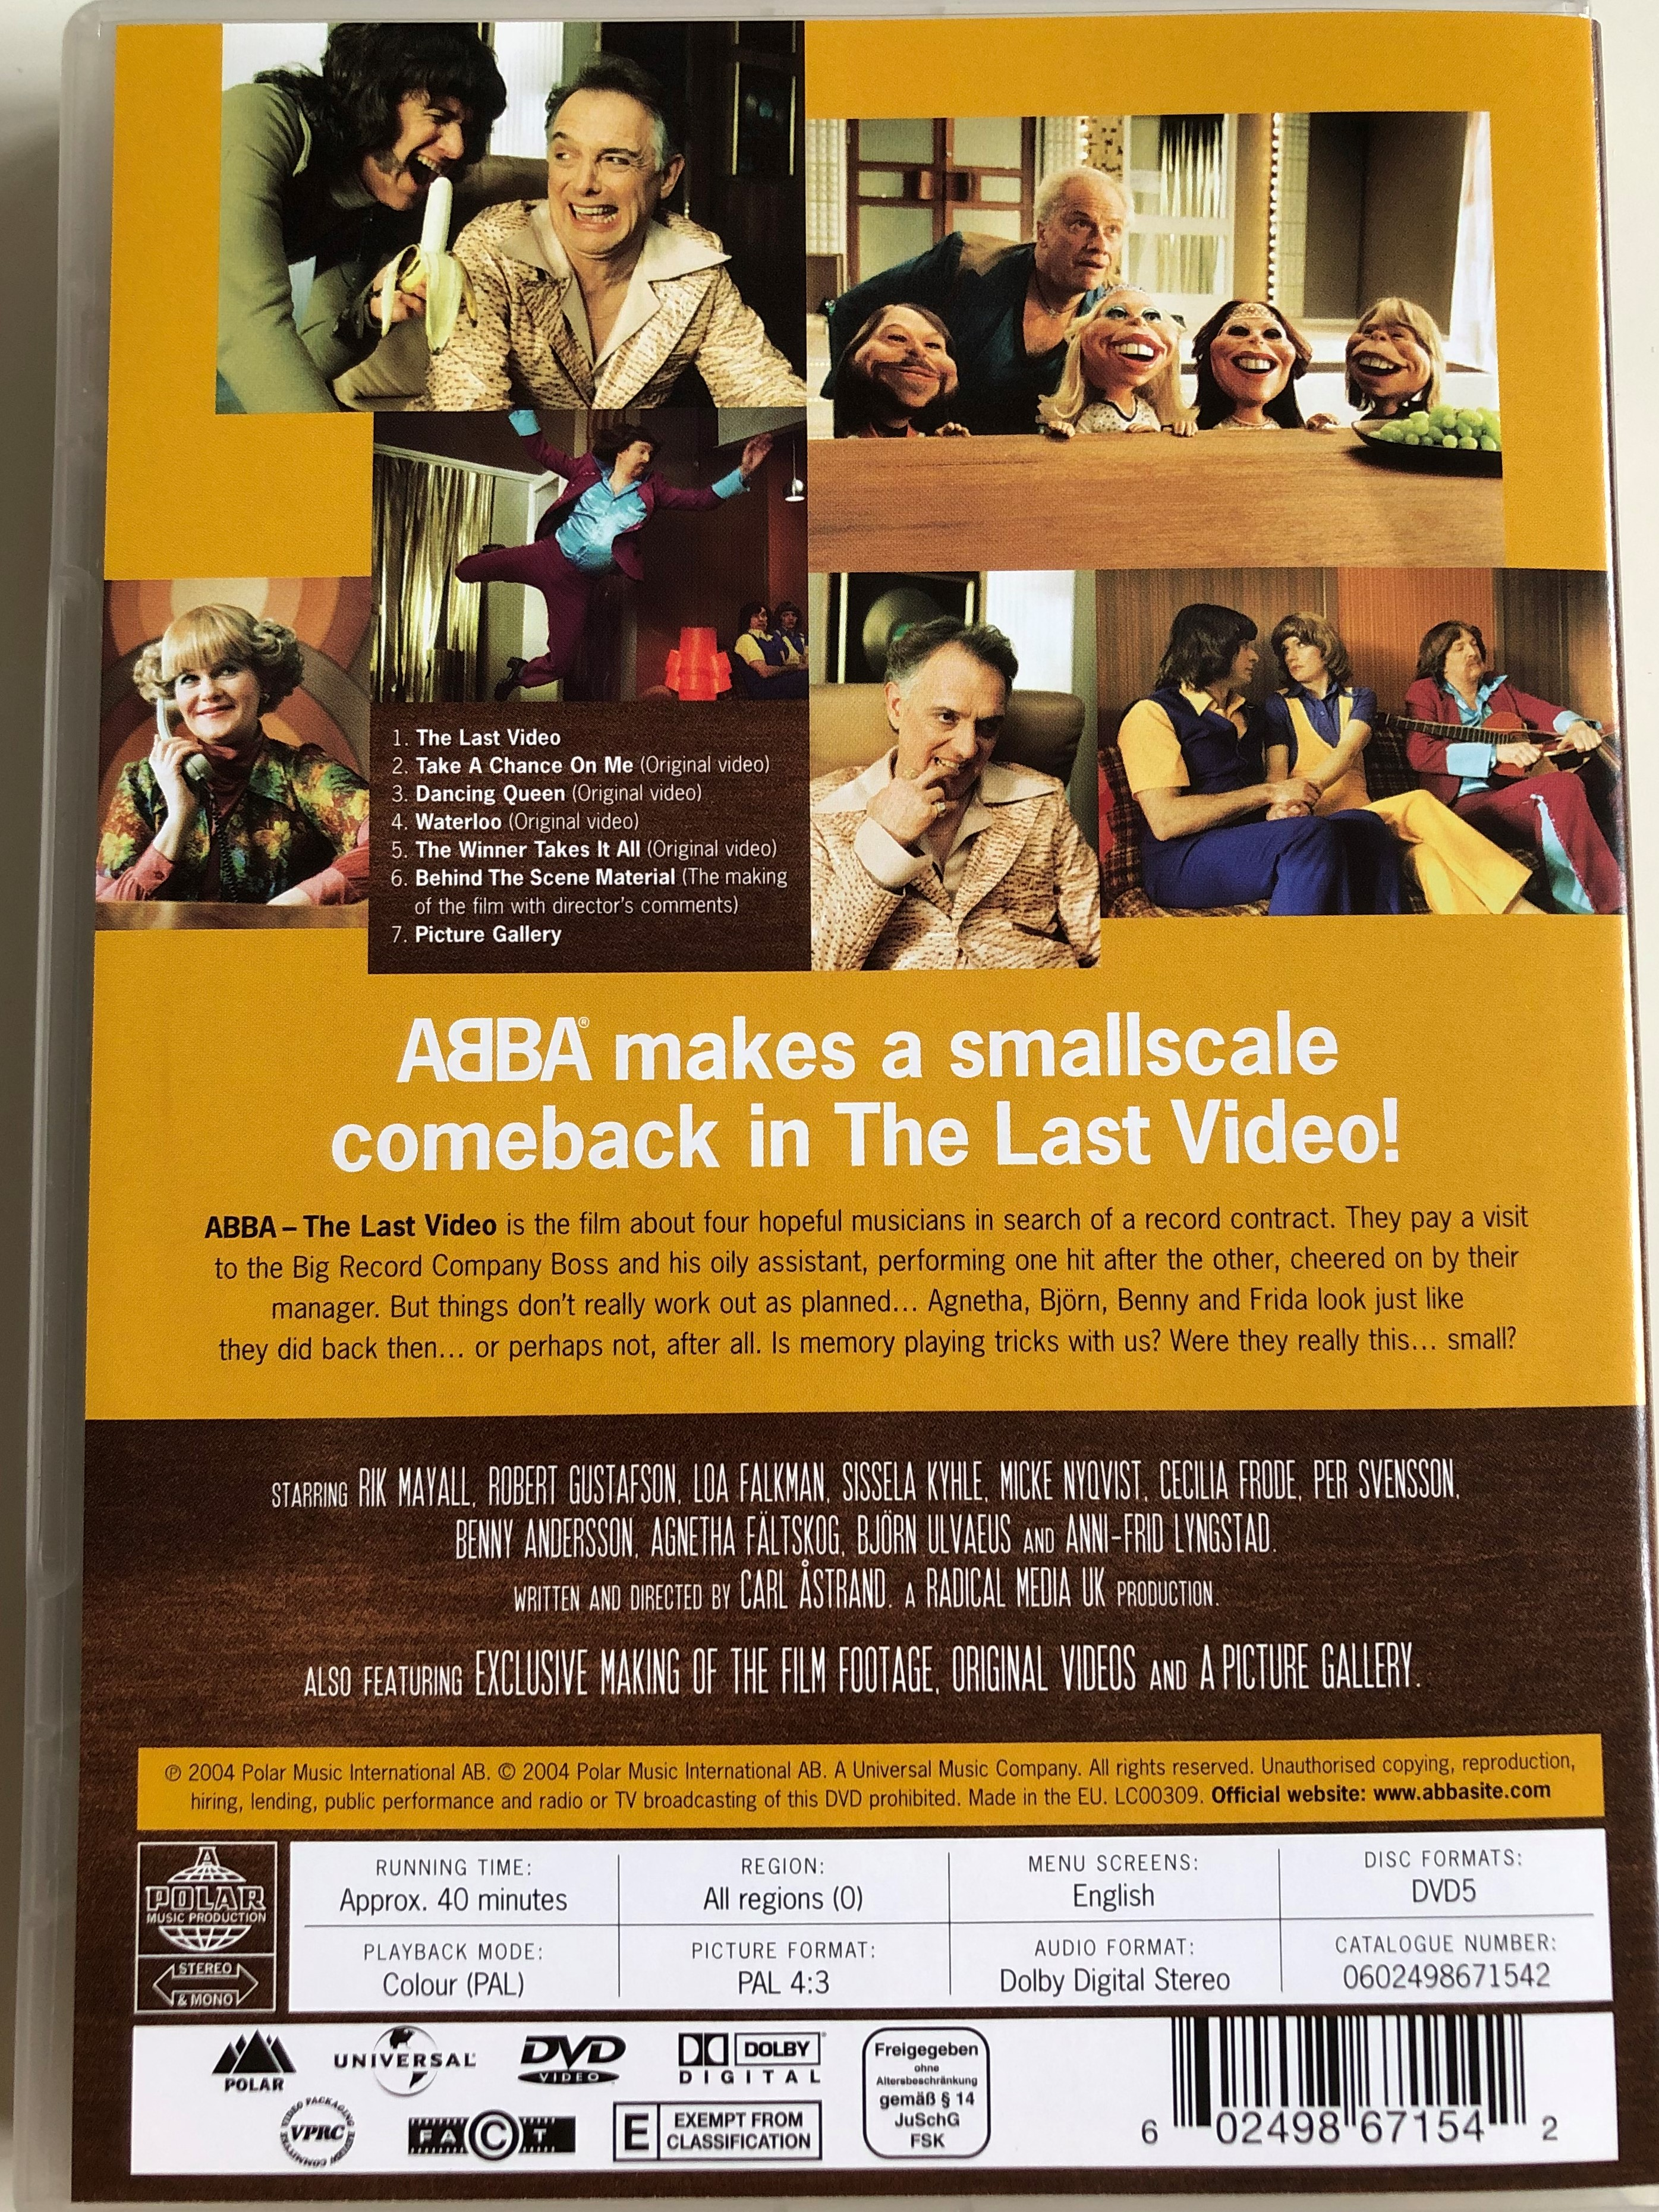 -abba-the-last-video-dvd-2004-a-smallscale-comeback-in-the-last-video-directed-by-carl-astrand-3-.jpg